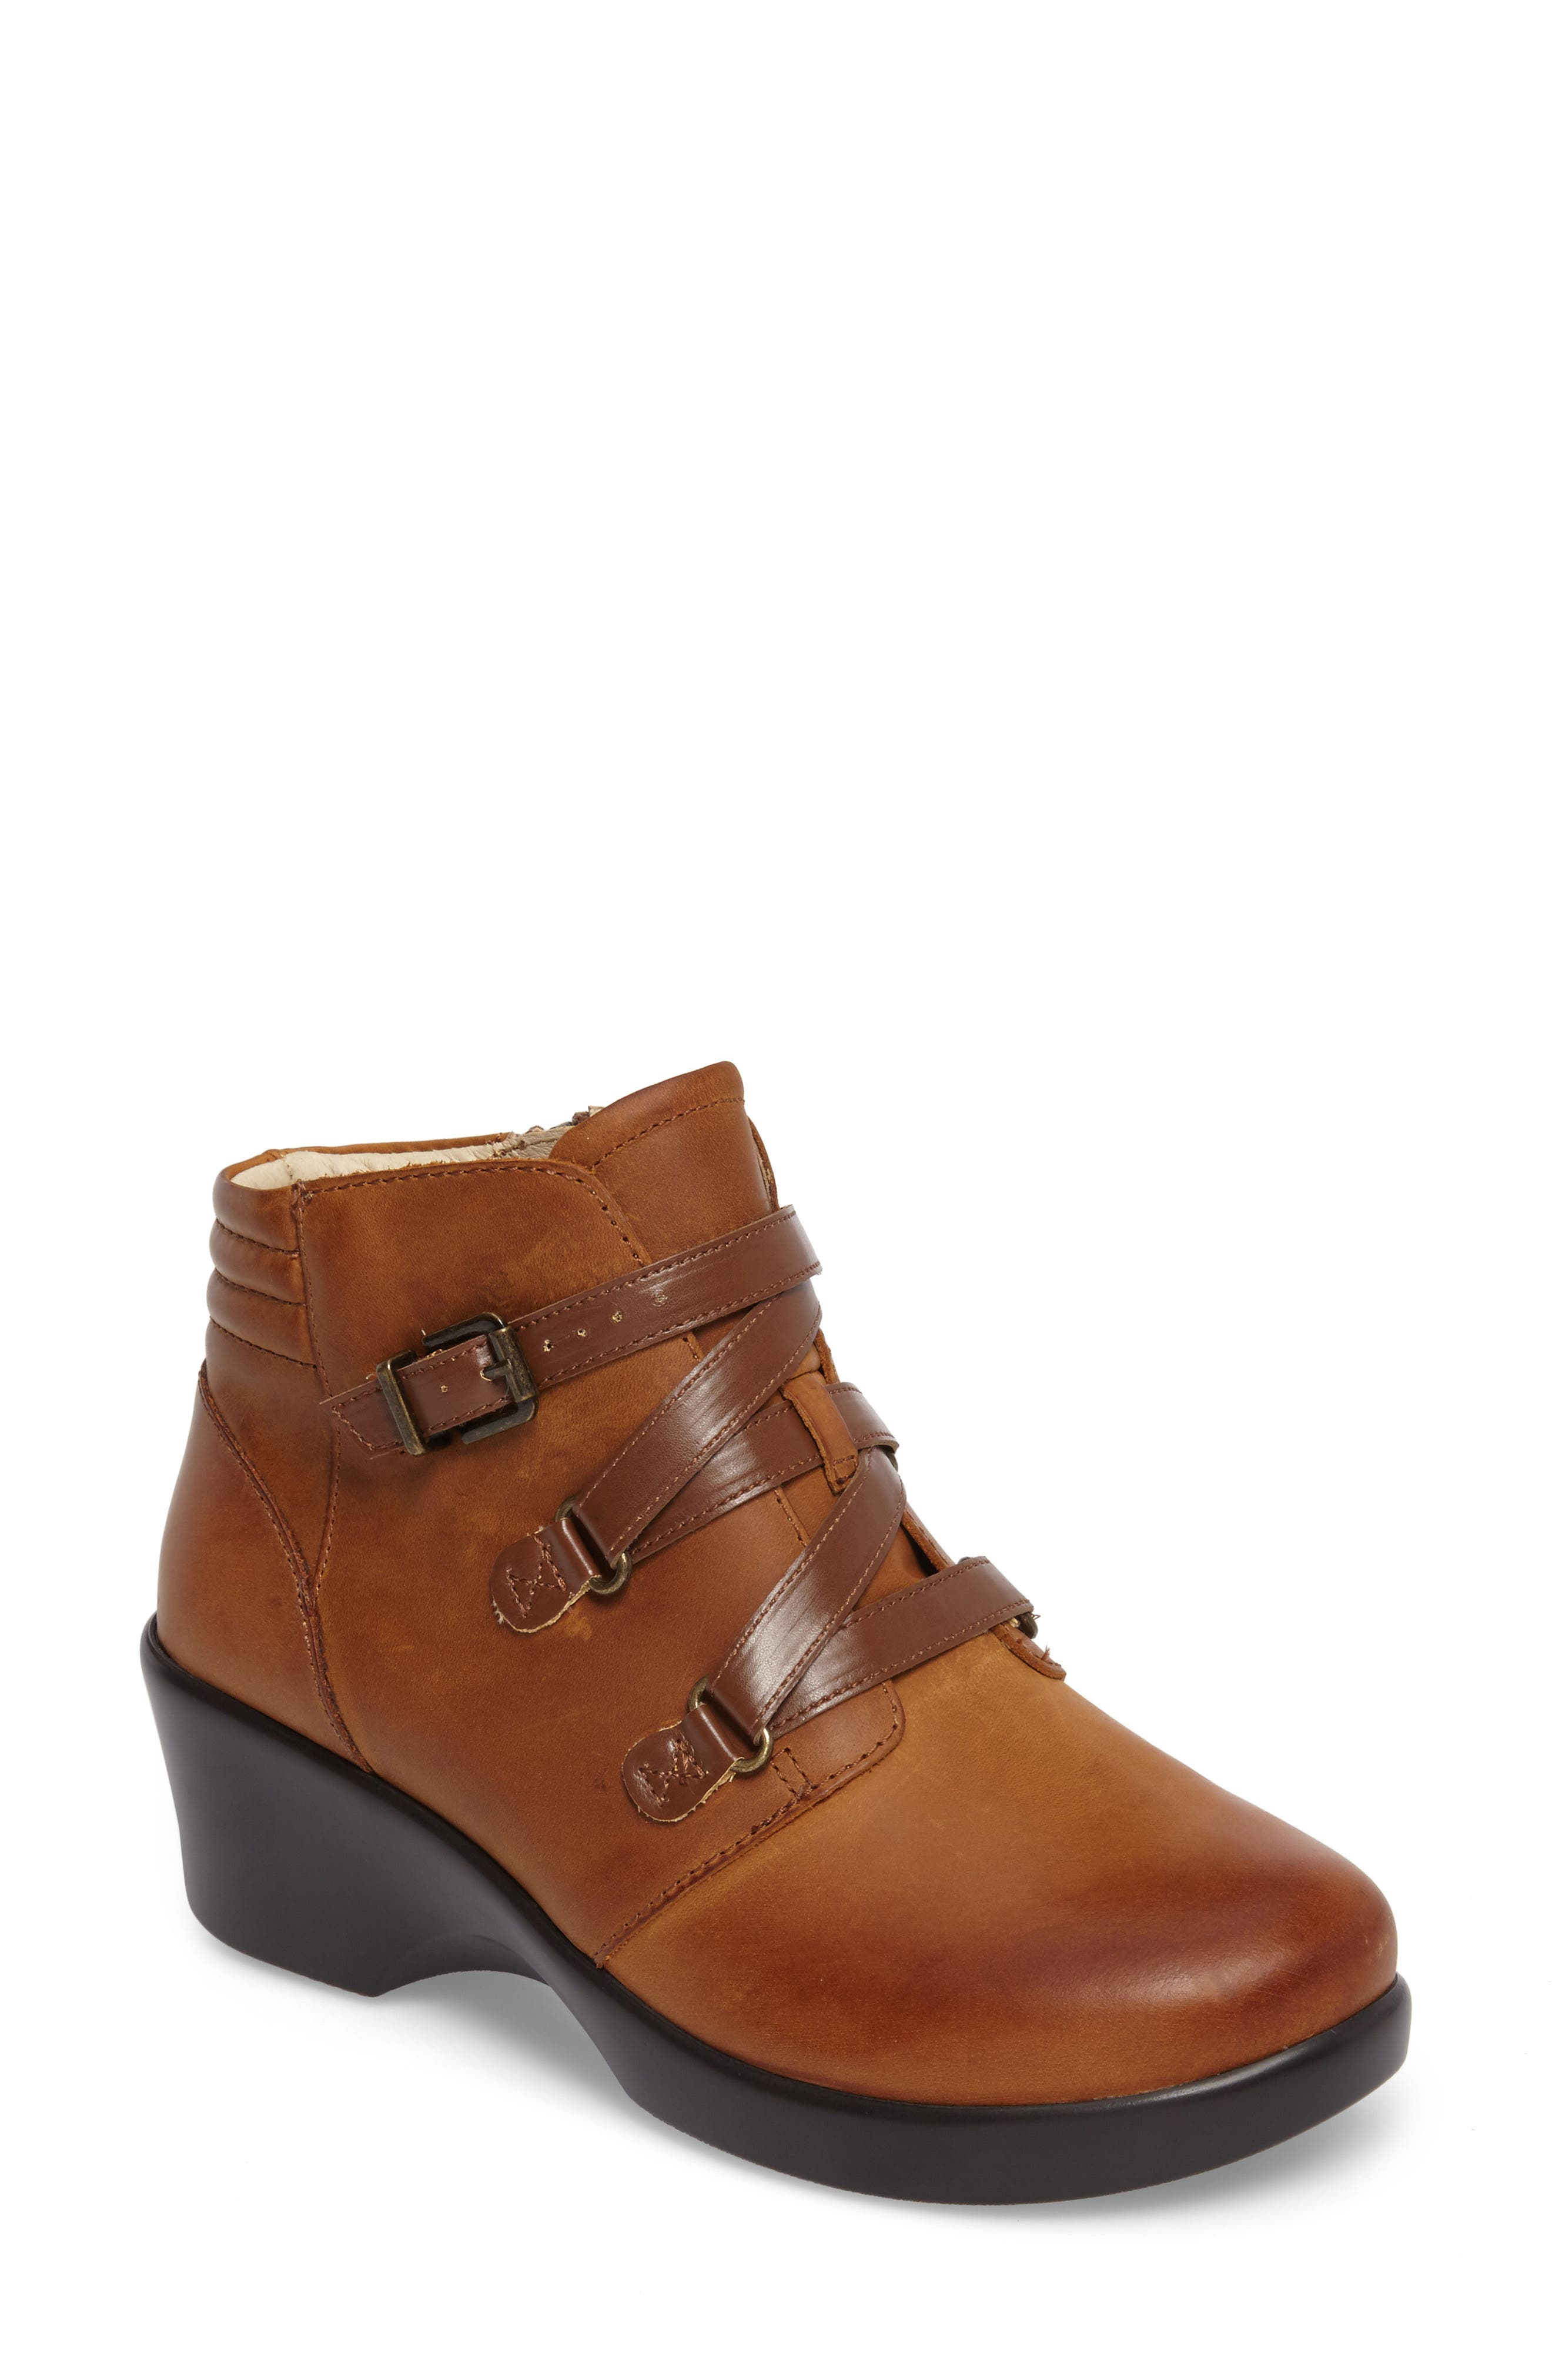 Indi Demi Wedge Bootie,                             Main thumbnail 1, color,                             Walnut Leather